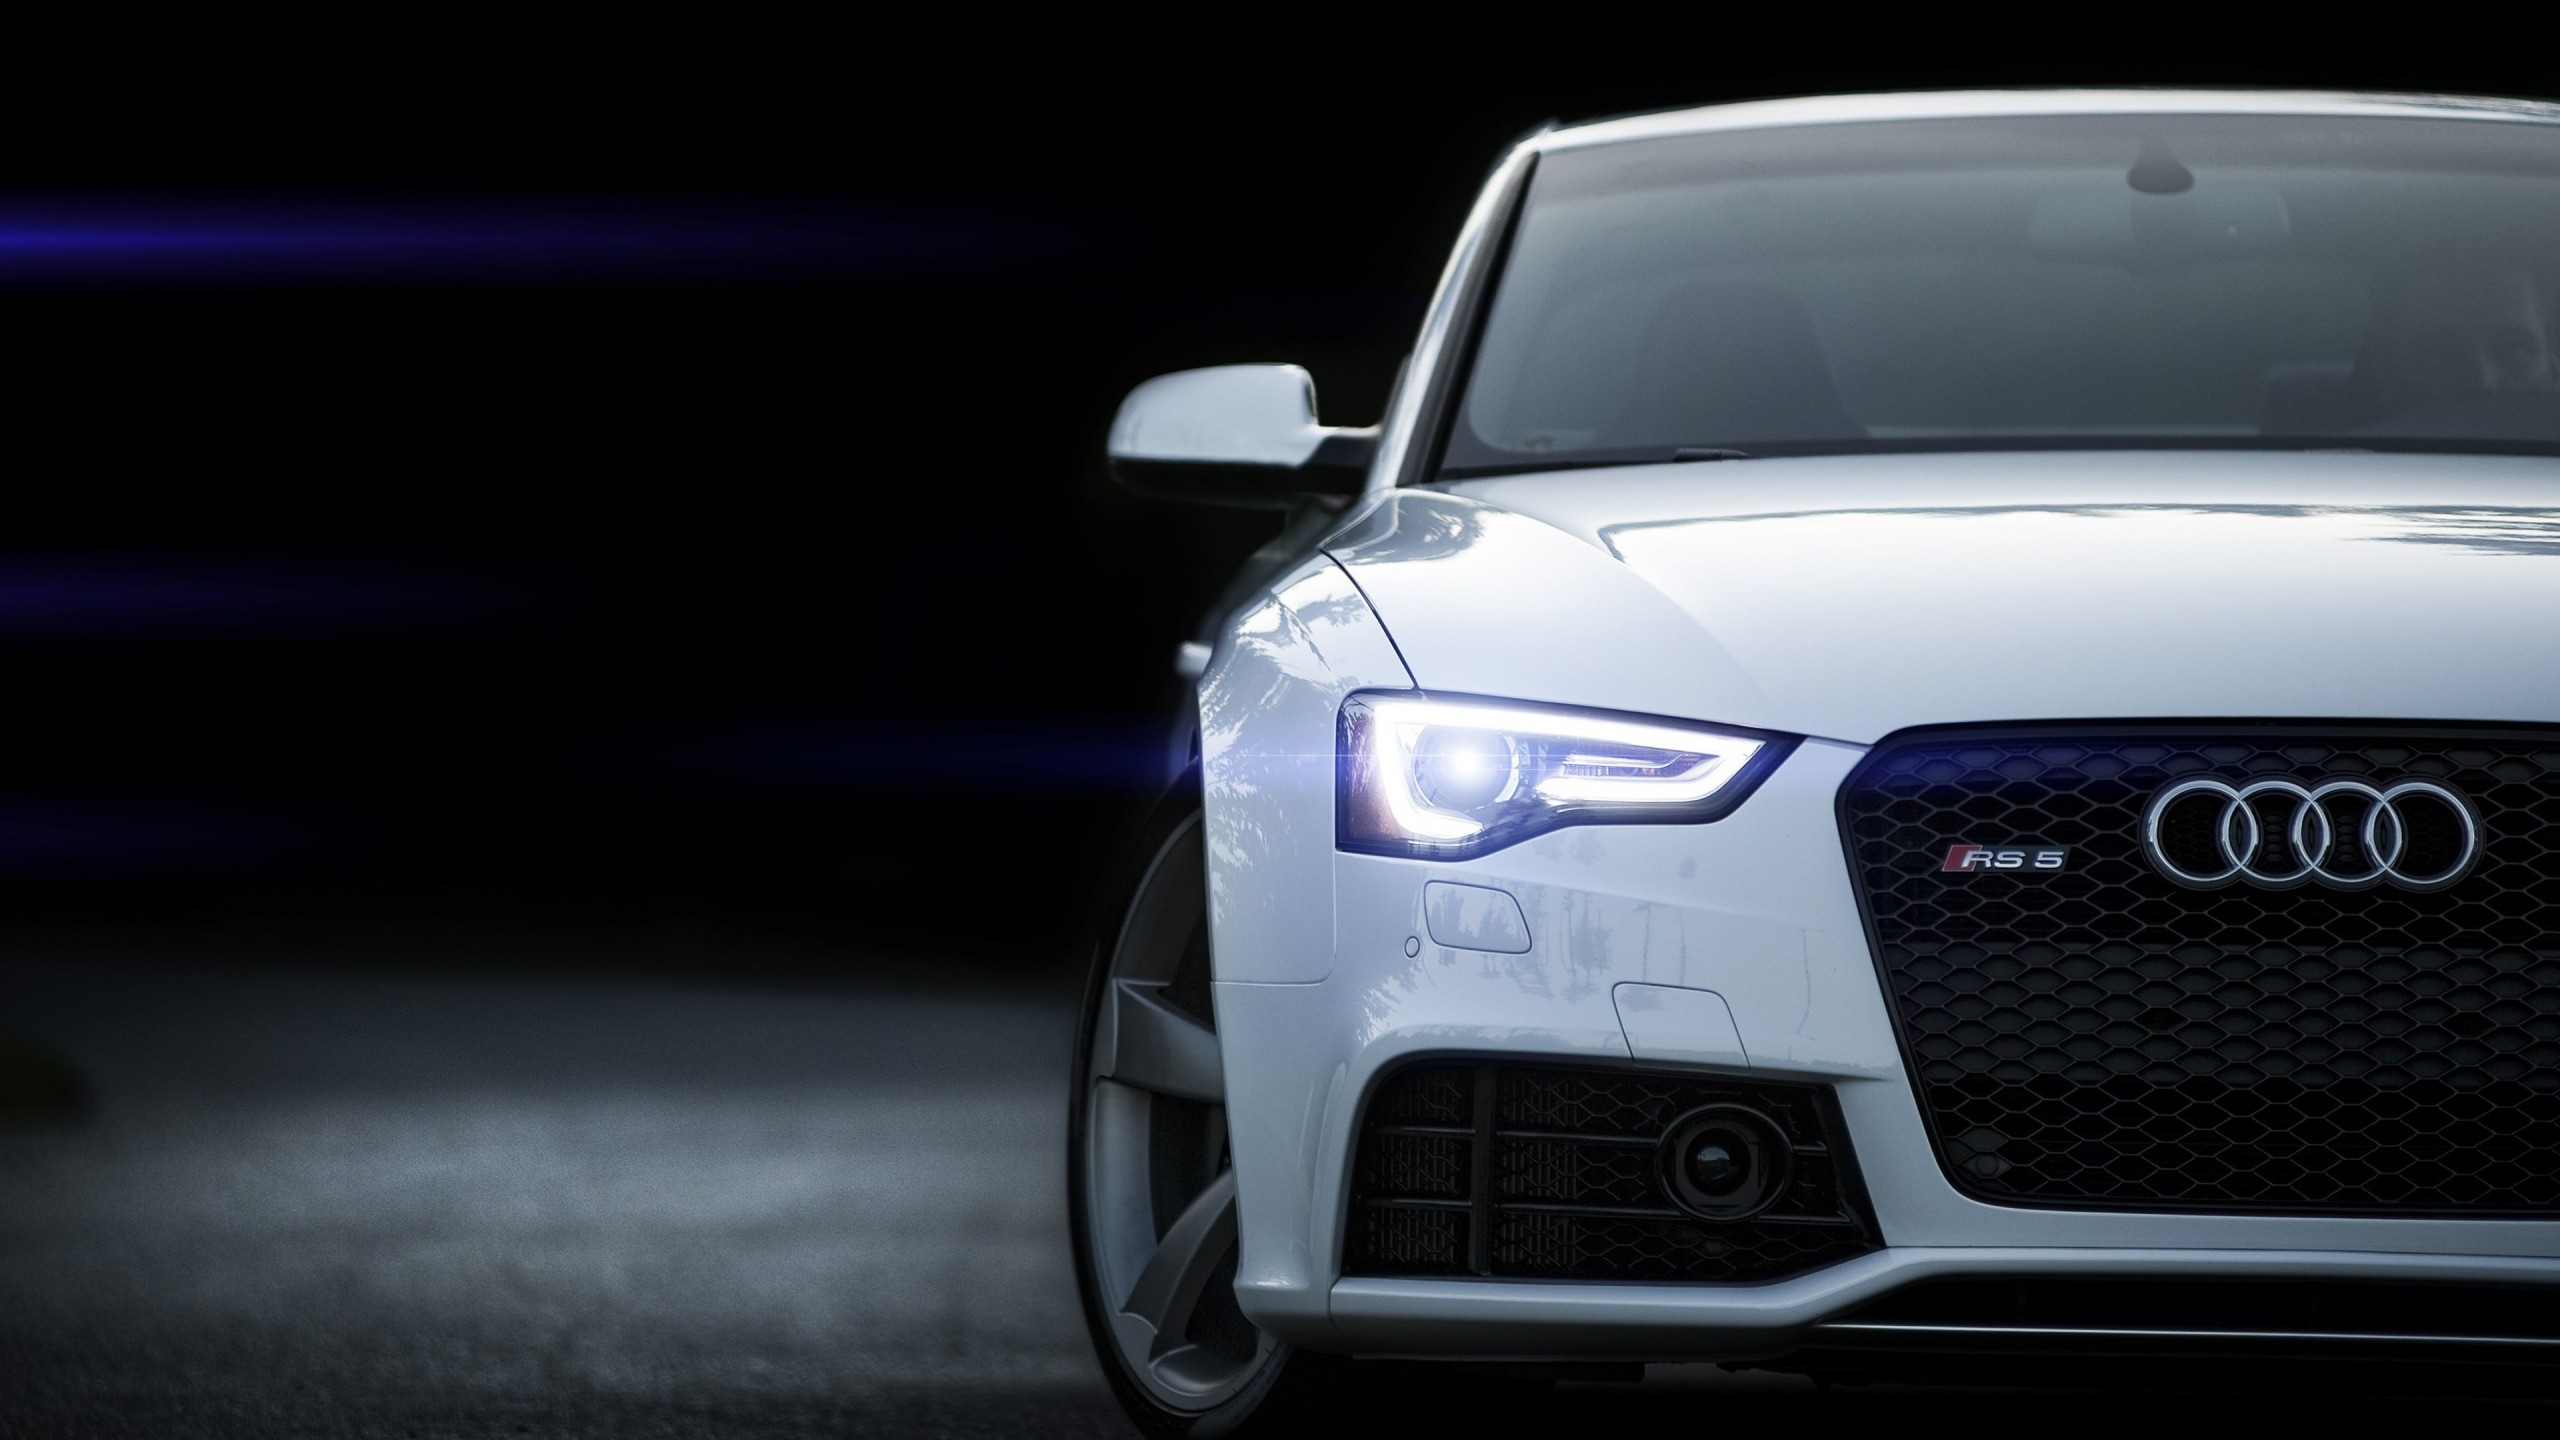 2015 Audi RS 5 Coupe Wallpaper for Social Media YouTube Channel Art